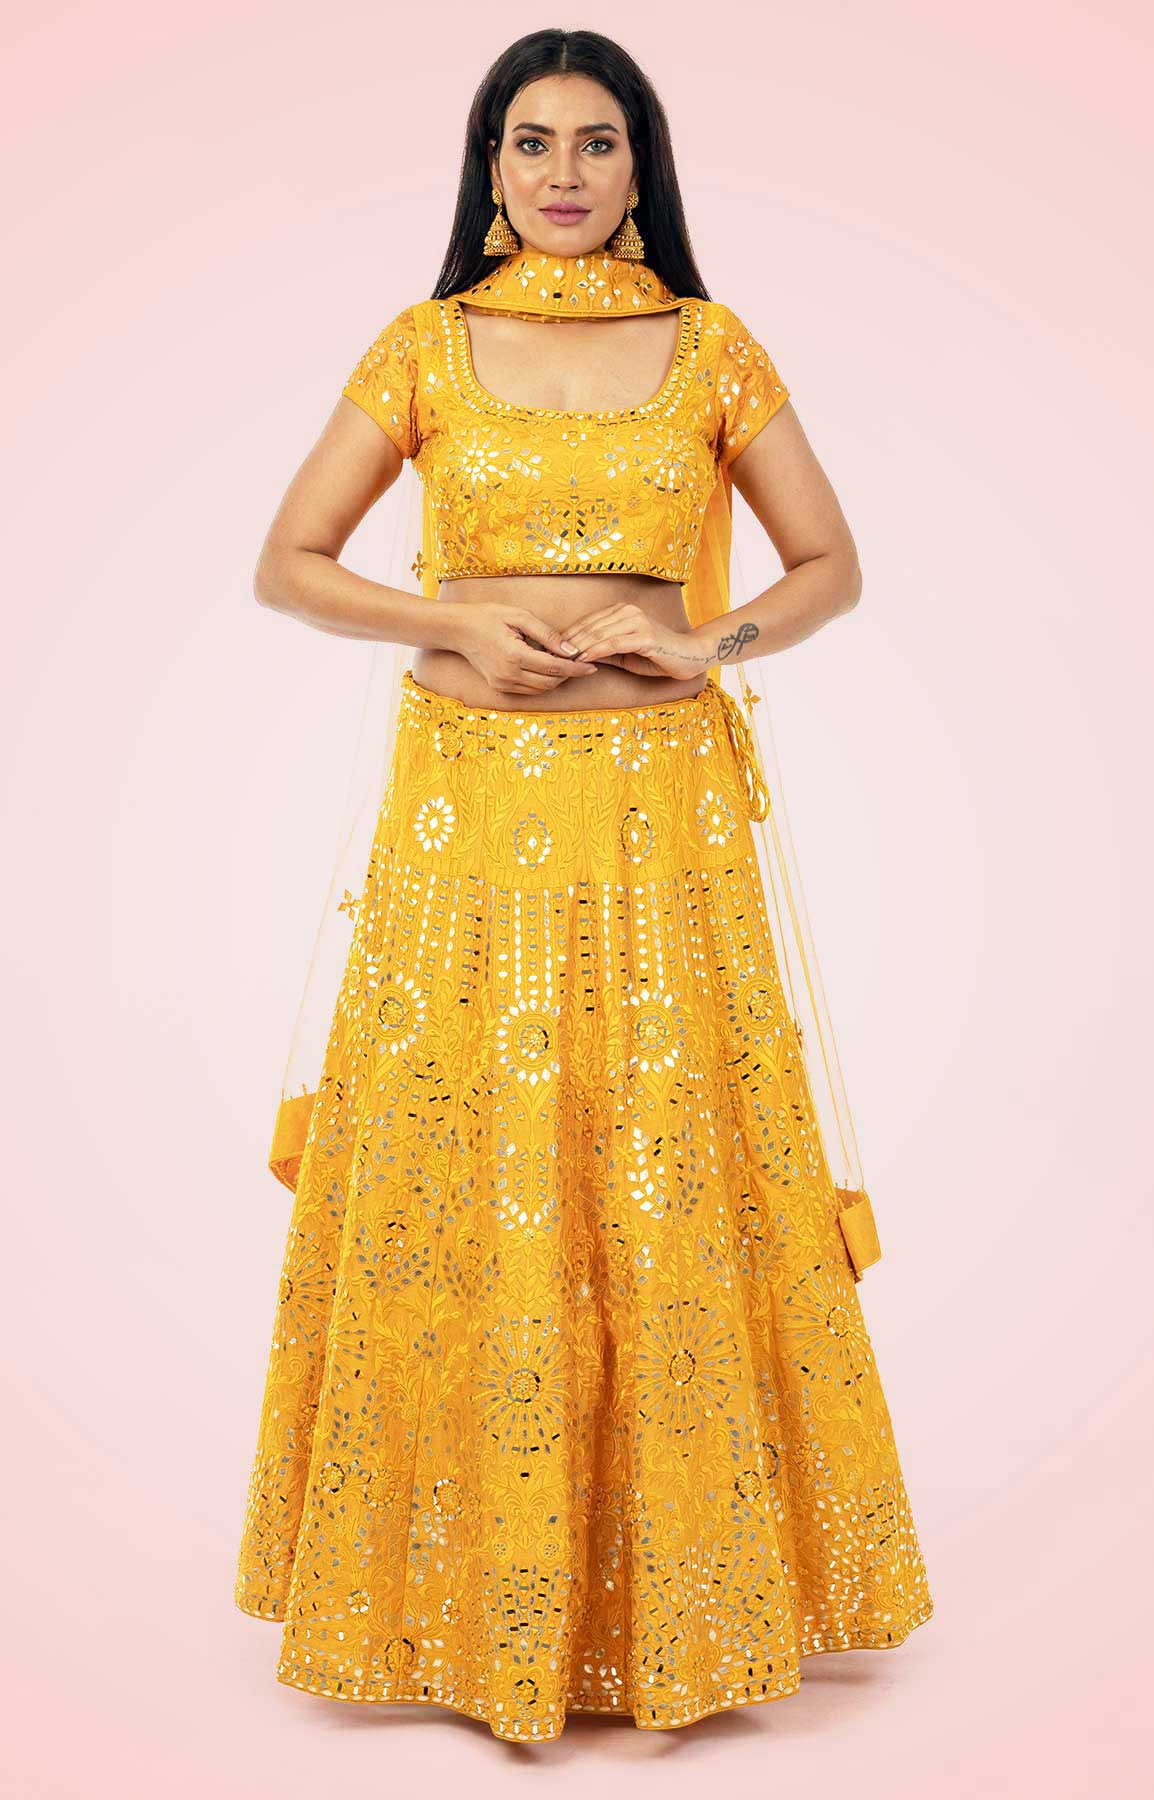 Golden Yellow Lehenga Choli With Leather And Mirror Work – Viraaya By Ushnakmals